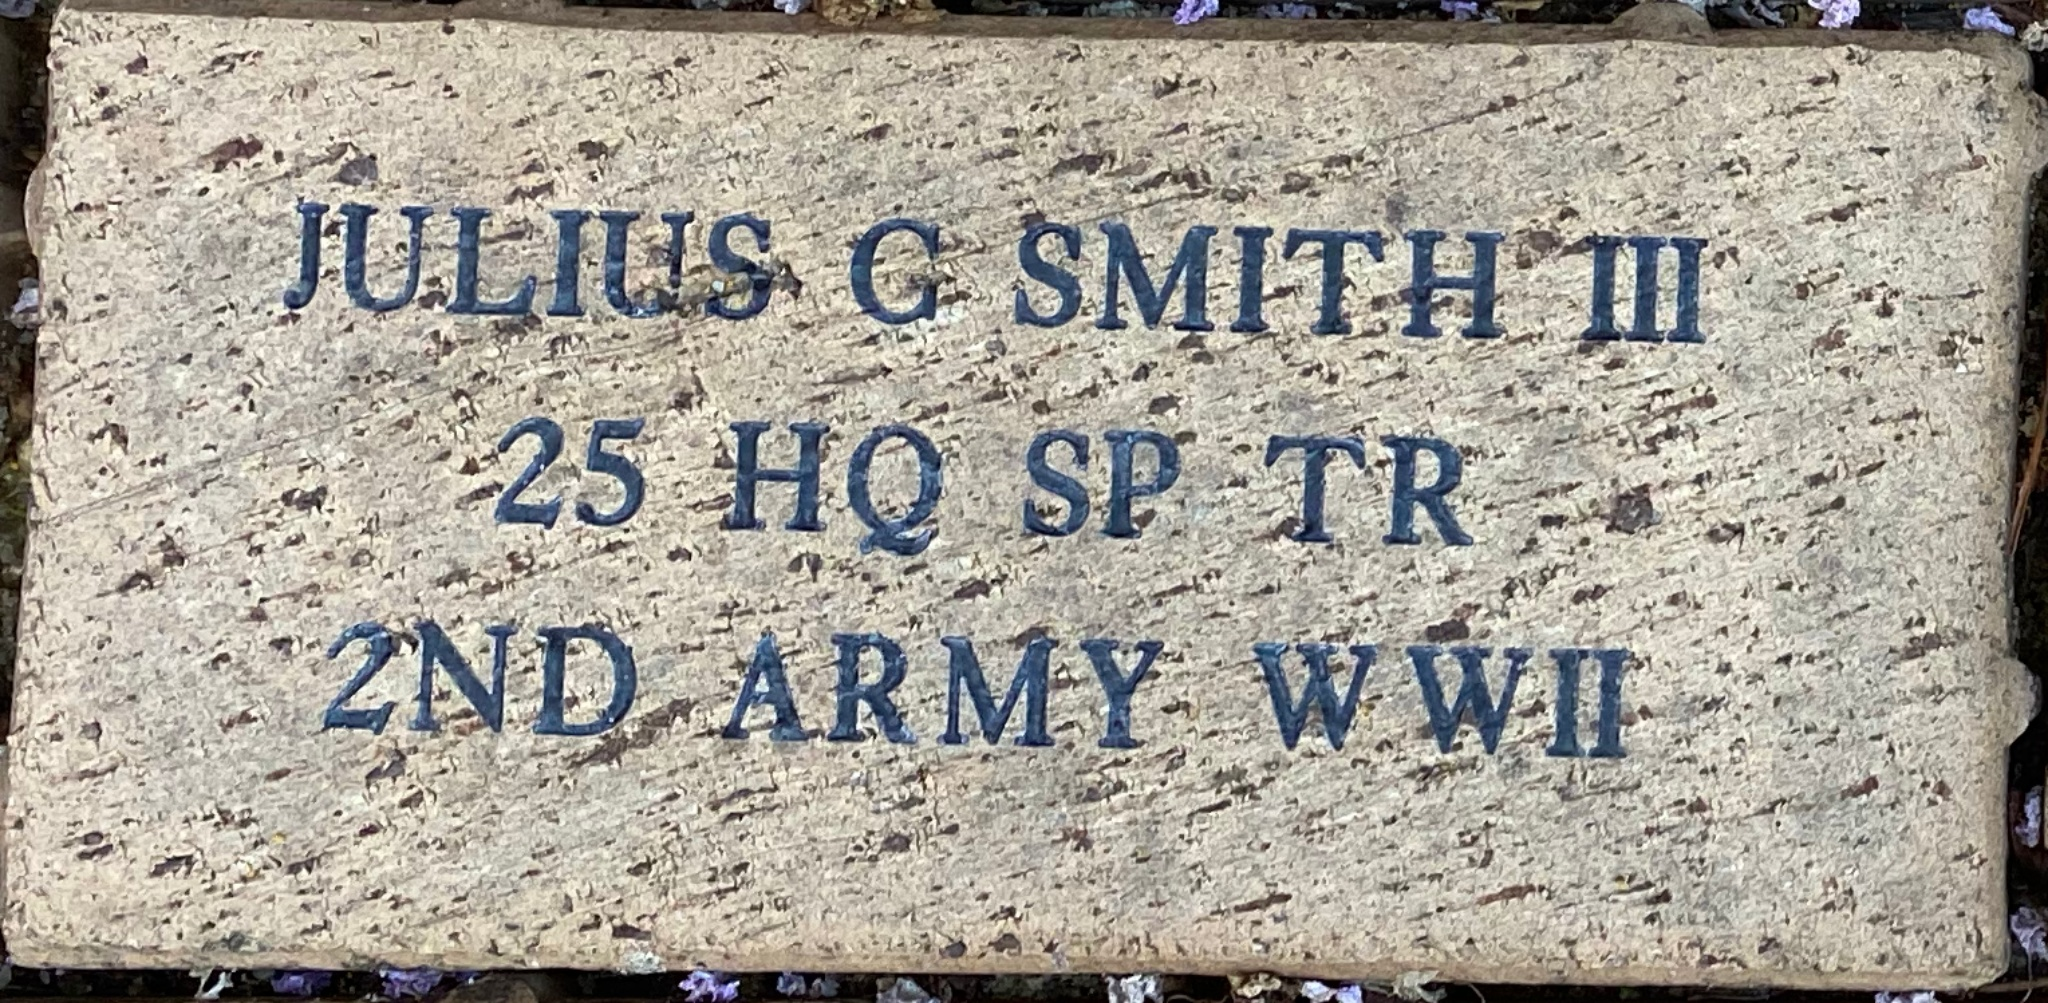 JULIUS C. SMITH III 25 HQ SP TR 2ND ARMY WWII